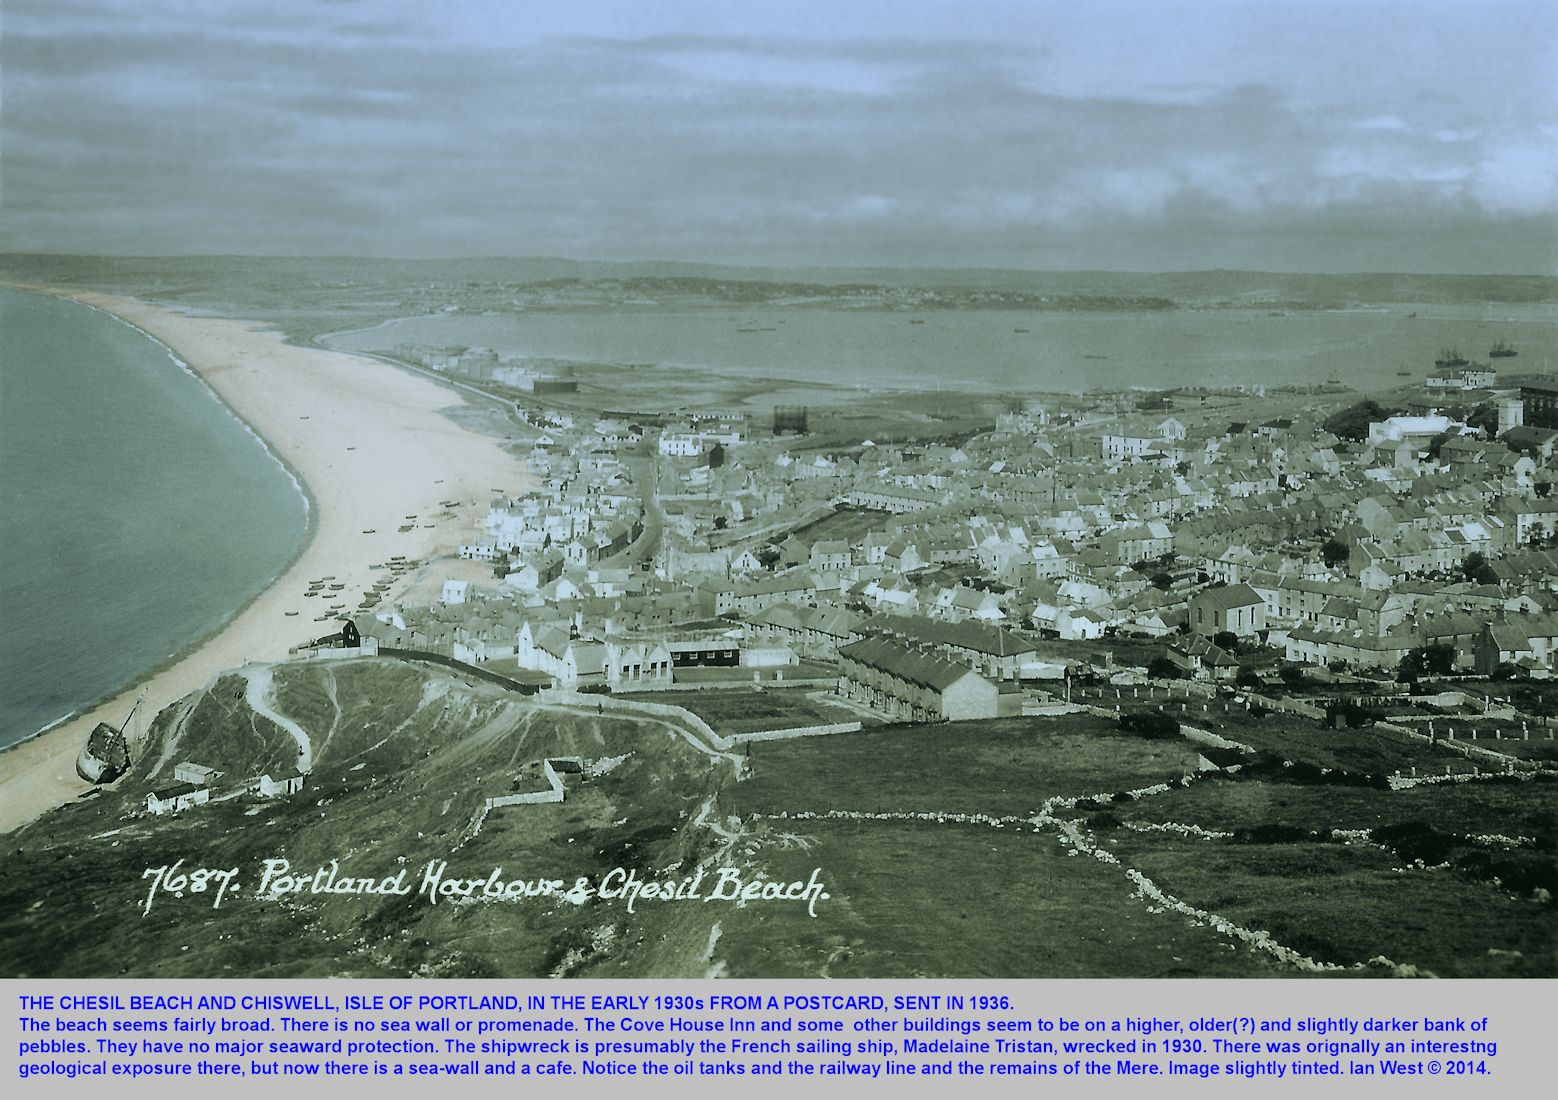 A postcard view of the Chesil Beach in quiet conditions in the early 1930s, with the card sent in 1936